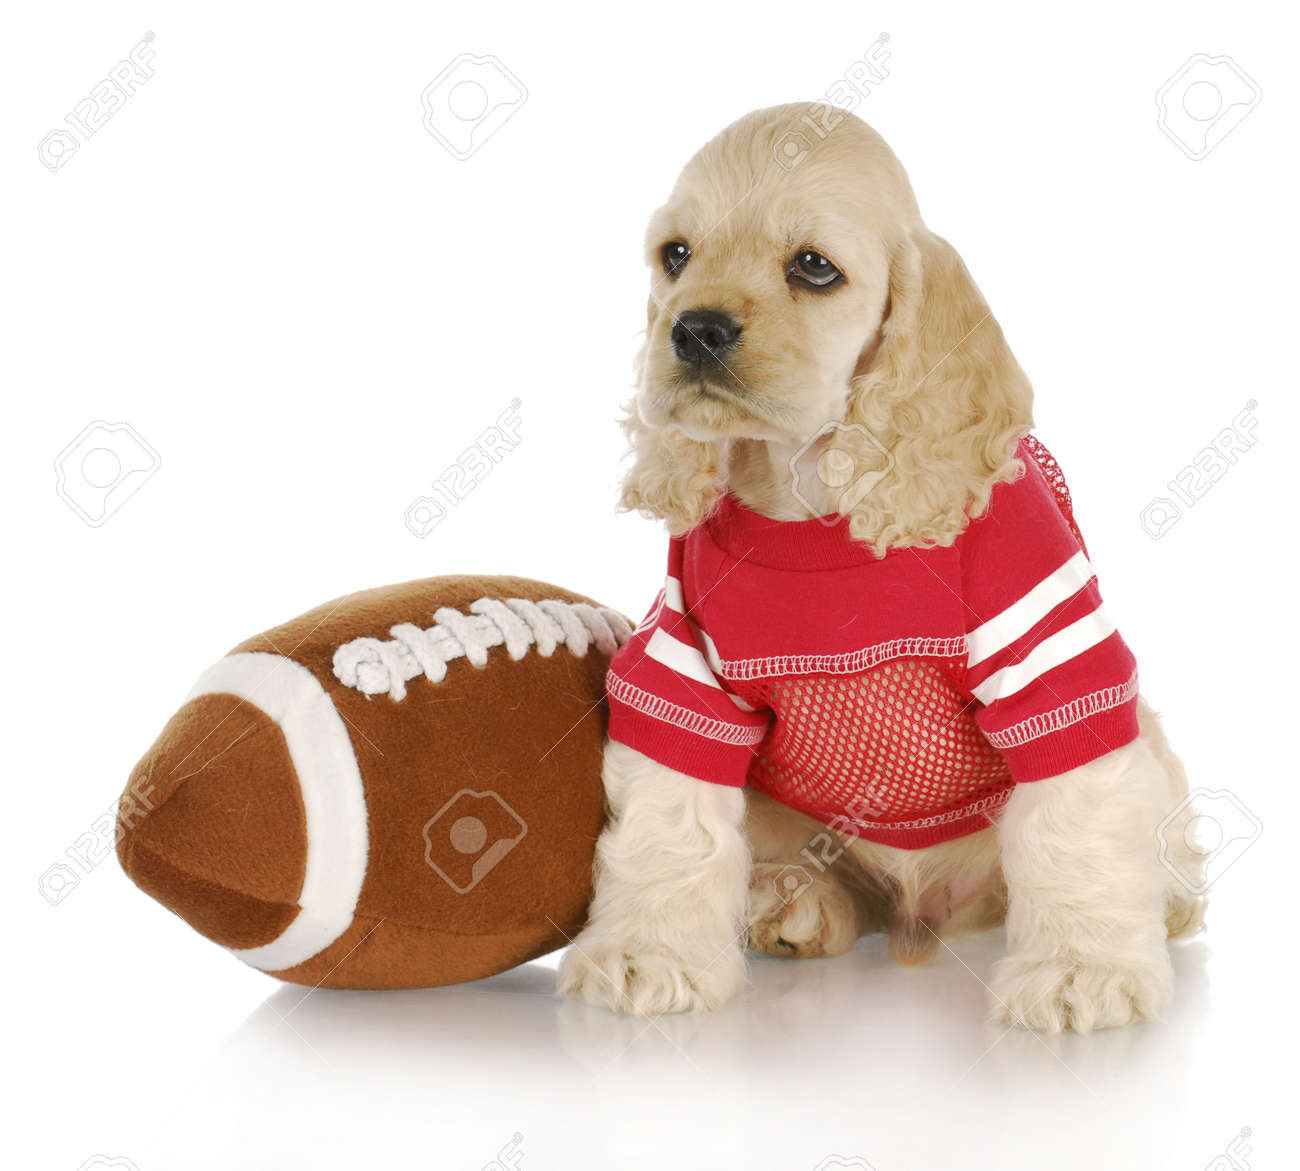 cute cocker spaniel puppy wearing football jersey sitting beside stuffed football Stock Photo - 8824970